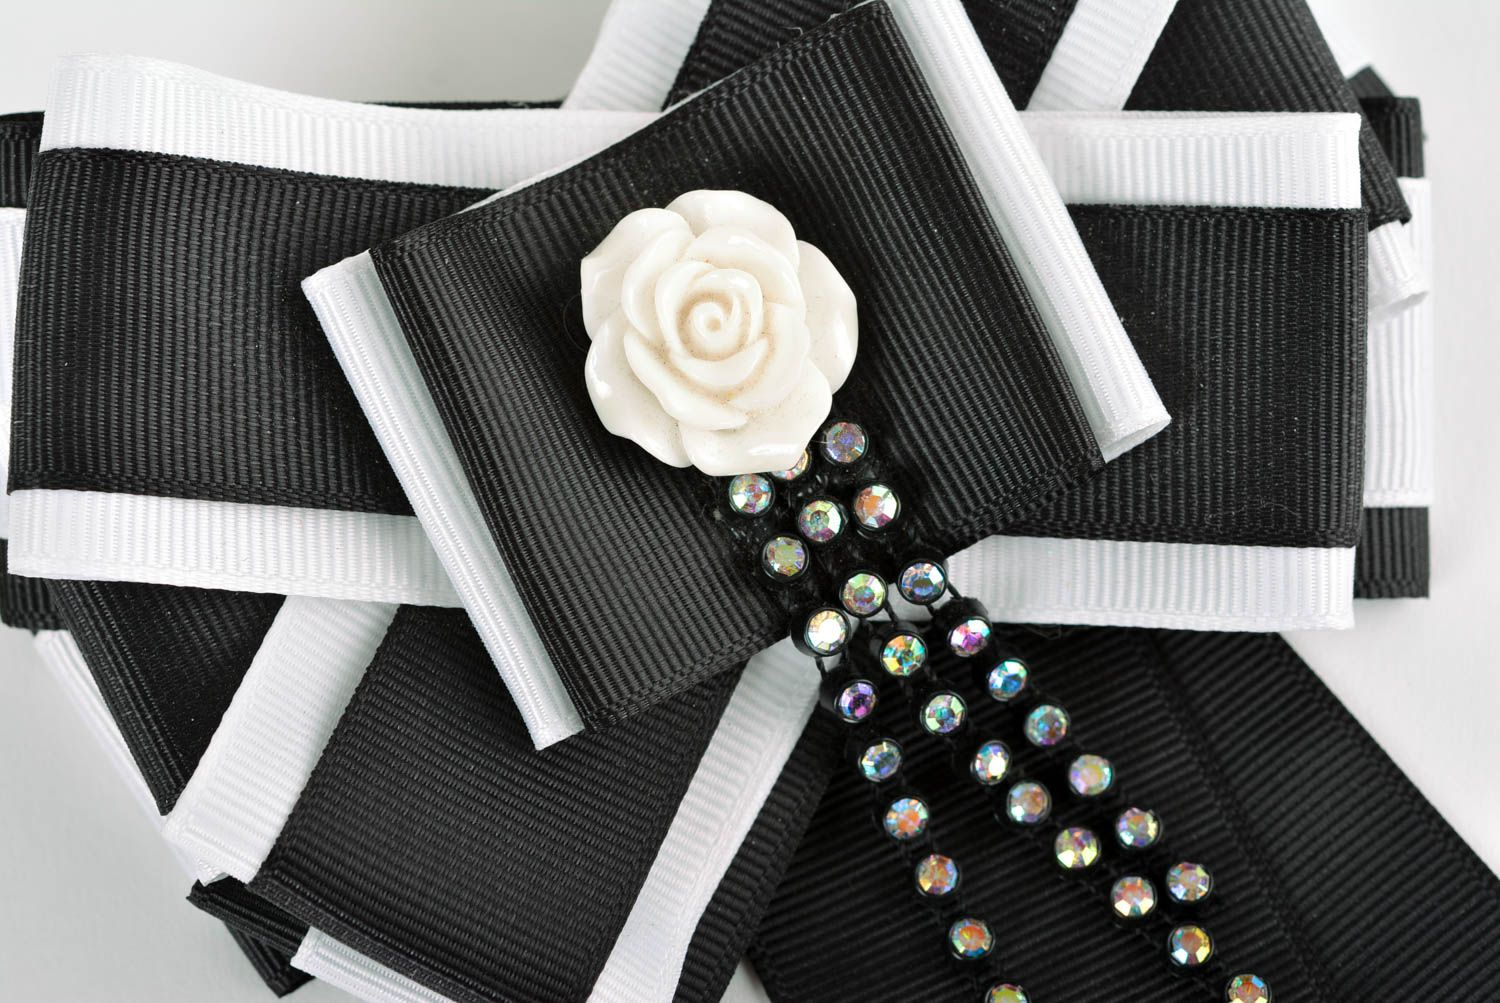 d408b3e1a38 abstraction brooches Handmade kanzashi brooch bow brooch rep ribbon brooch  for women elegant jewelry - MADEheart